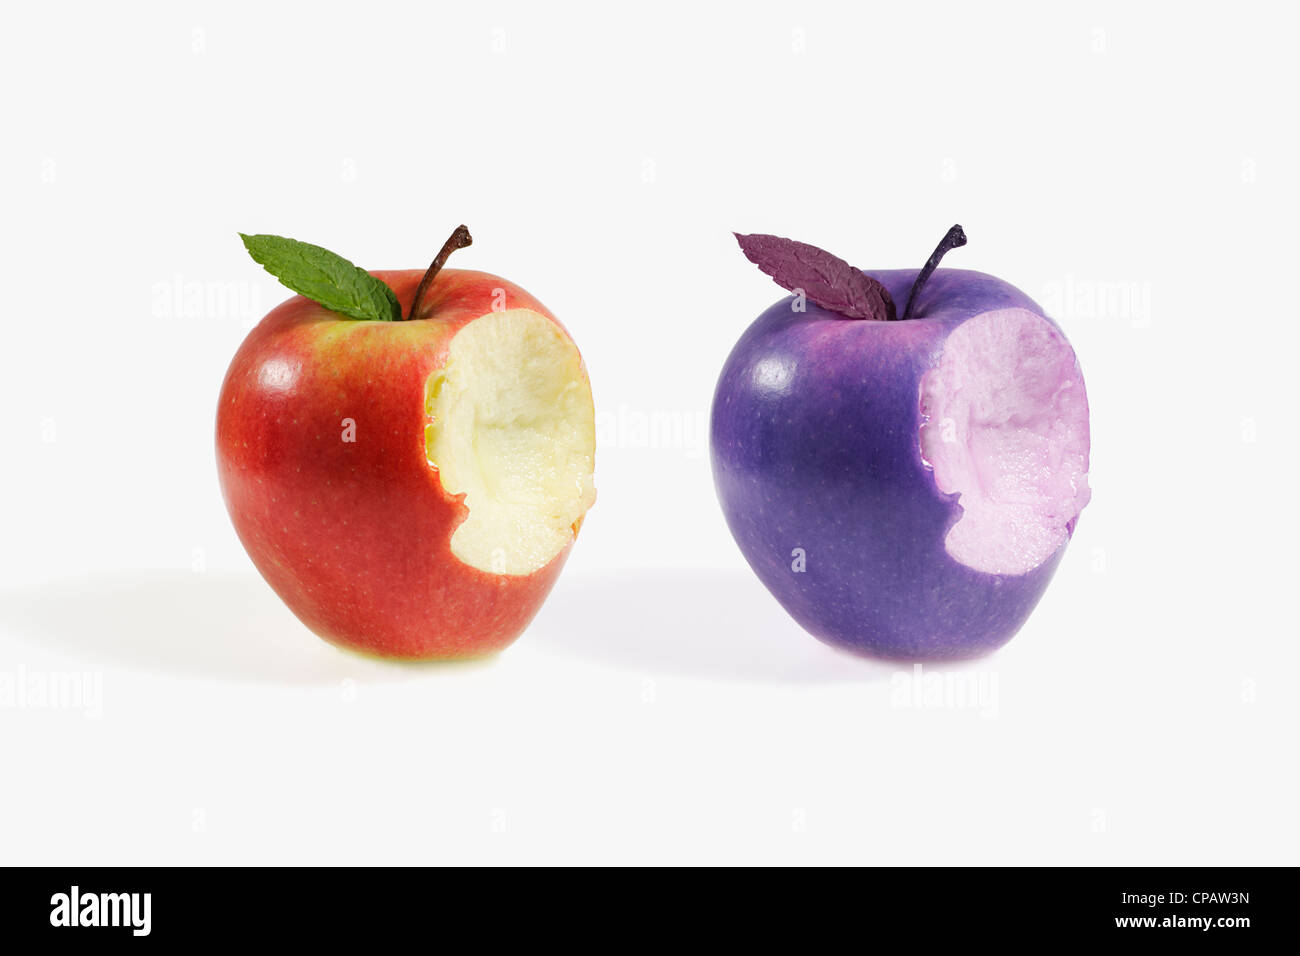 comparative between two different apples - Stock Image